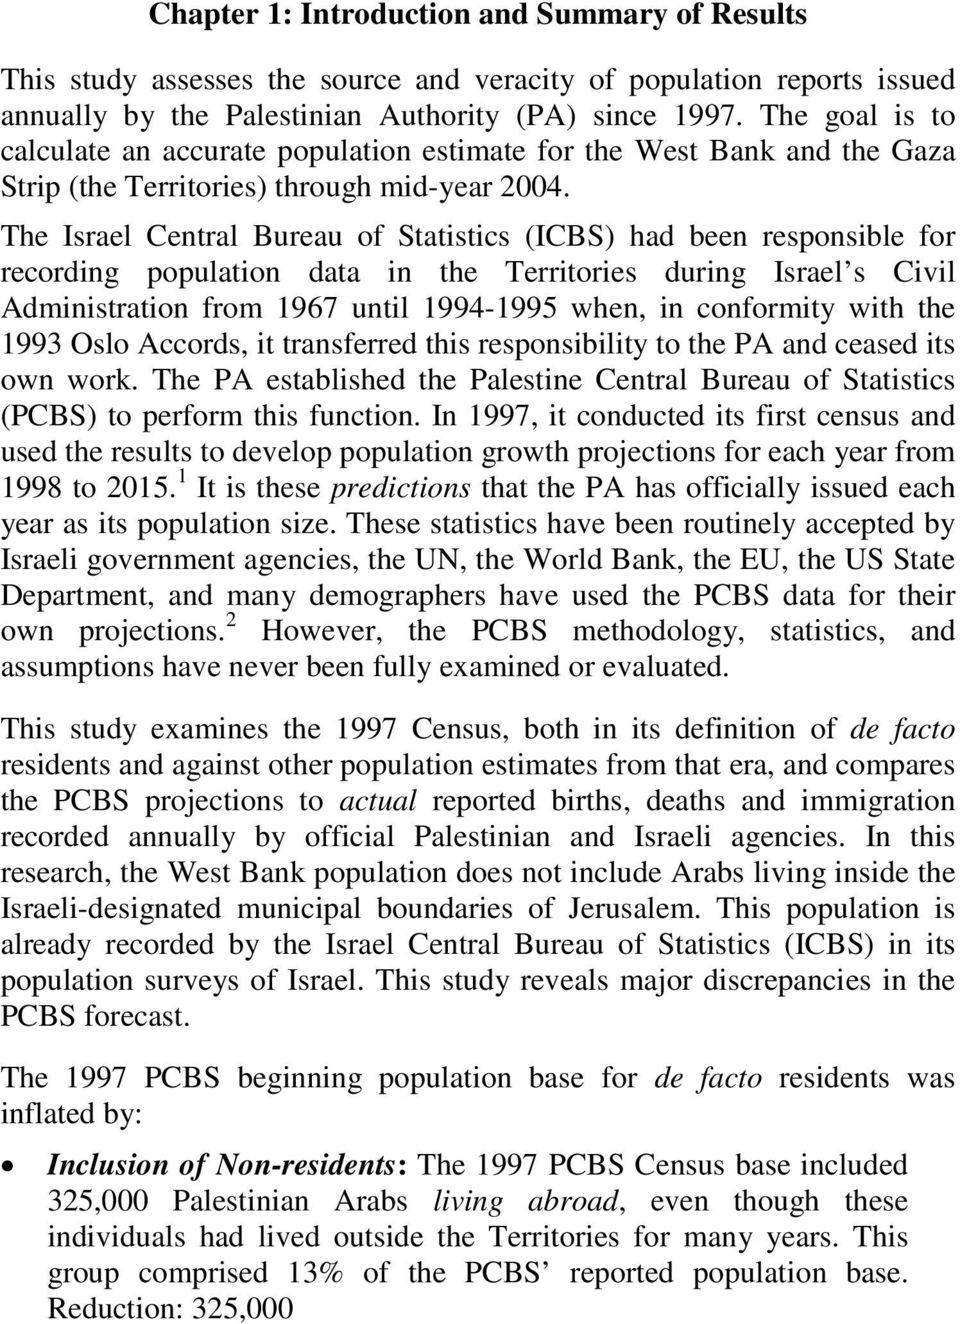 The Israel Central Bureau of Statistics (ICBS) had been responsible for recording population data in the Territories during Israel s Civil Administration from 1967 until 1994-1995 when, in conformity